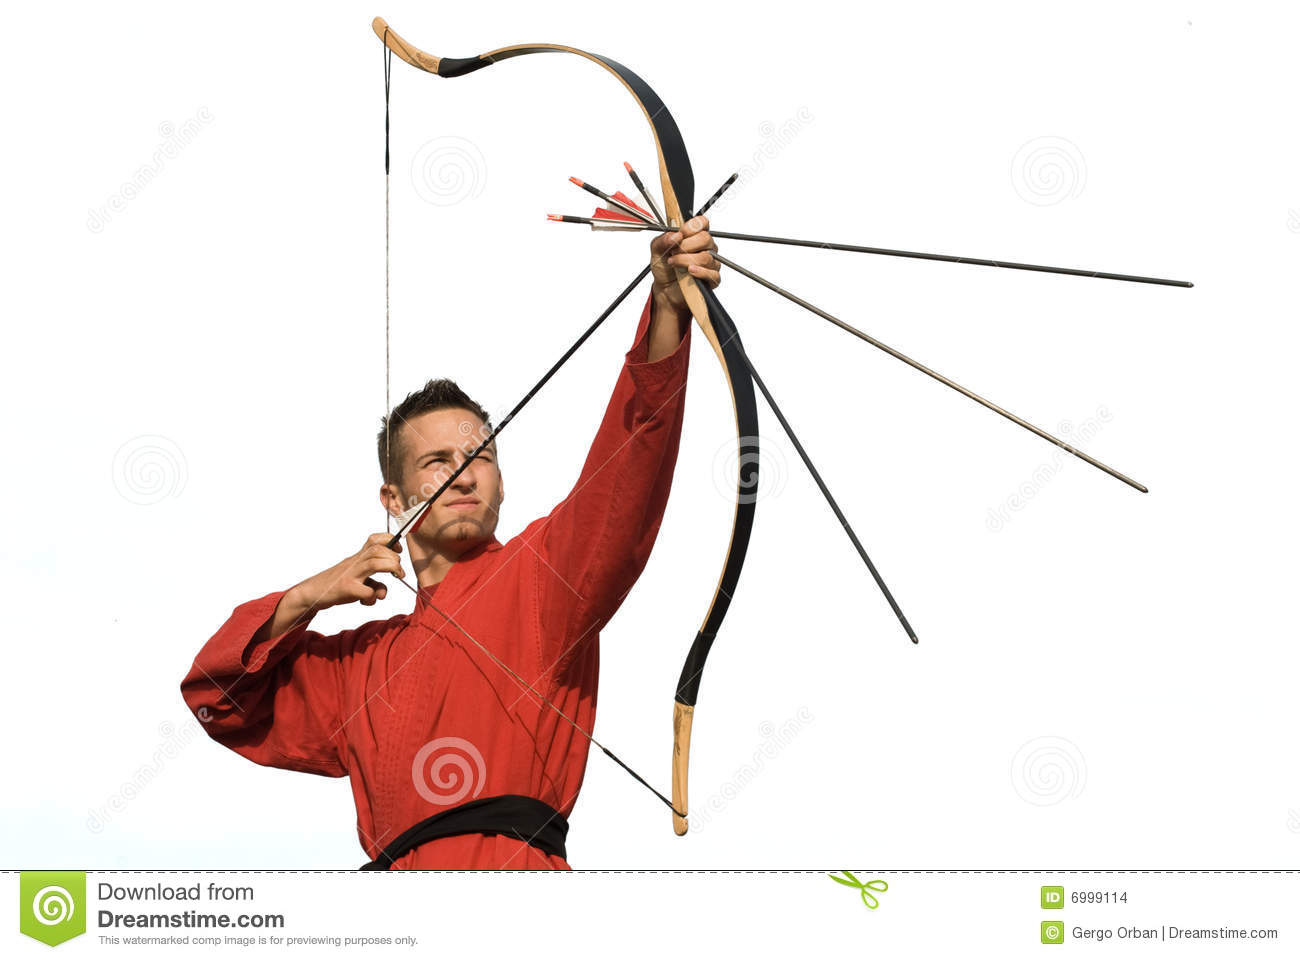 Archer aiming